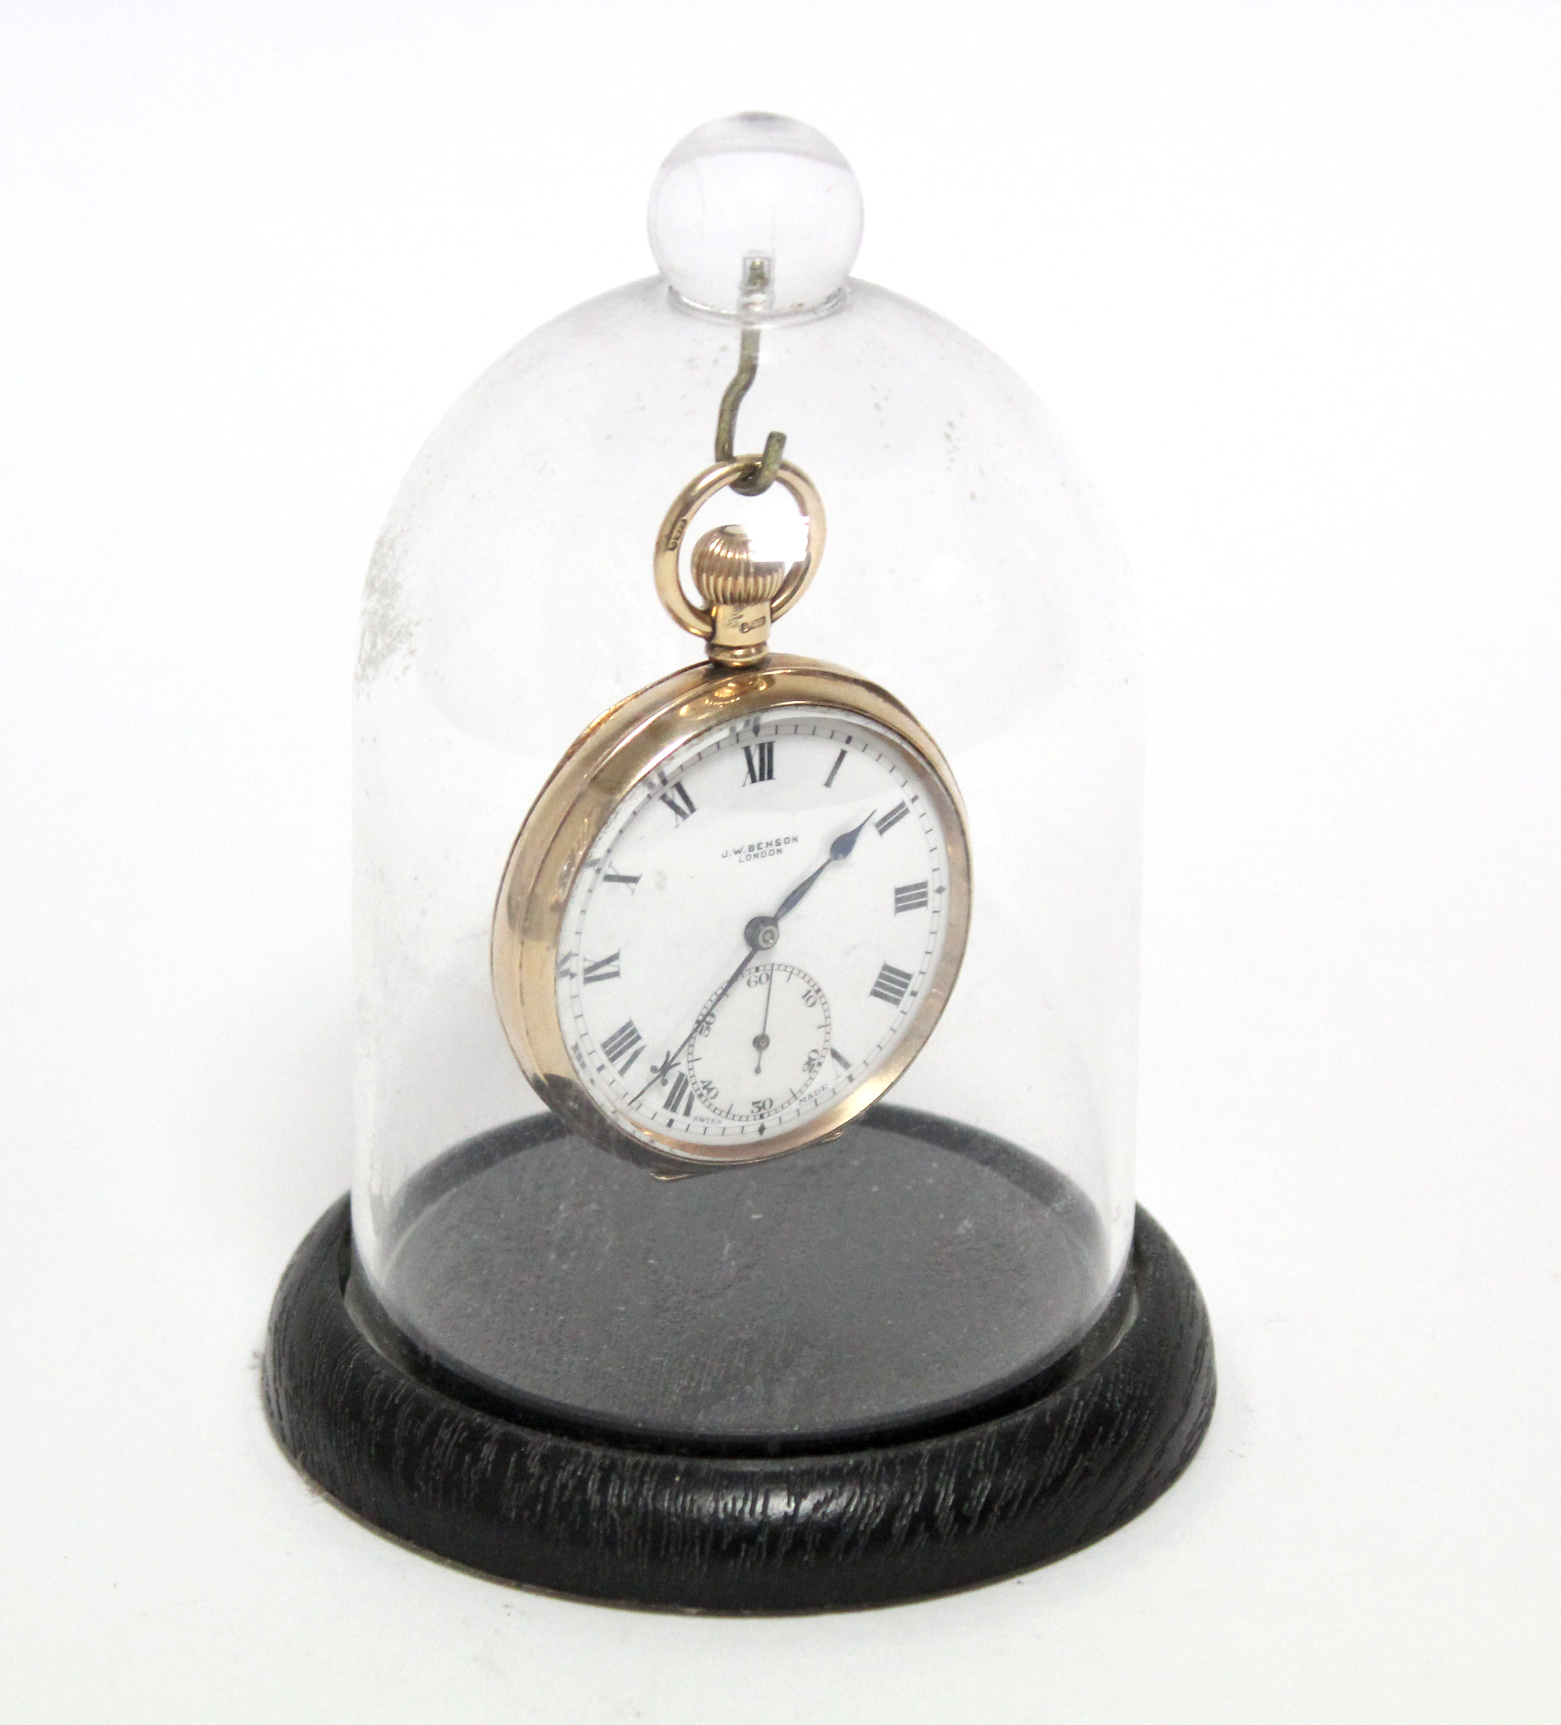 A 9ct. gold cased gent's open-face pocket watch, the white enamel dial with black roman numerals & - Image 7 of 7